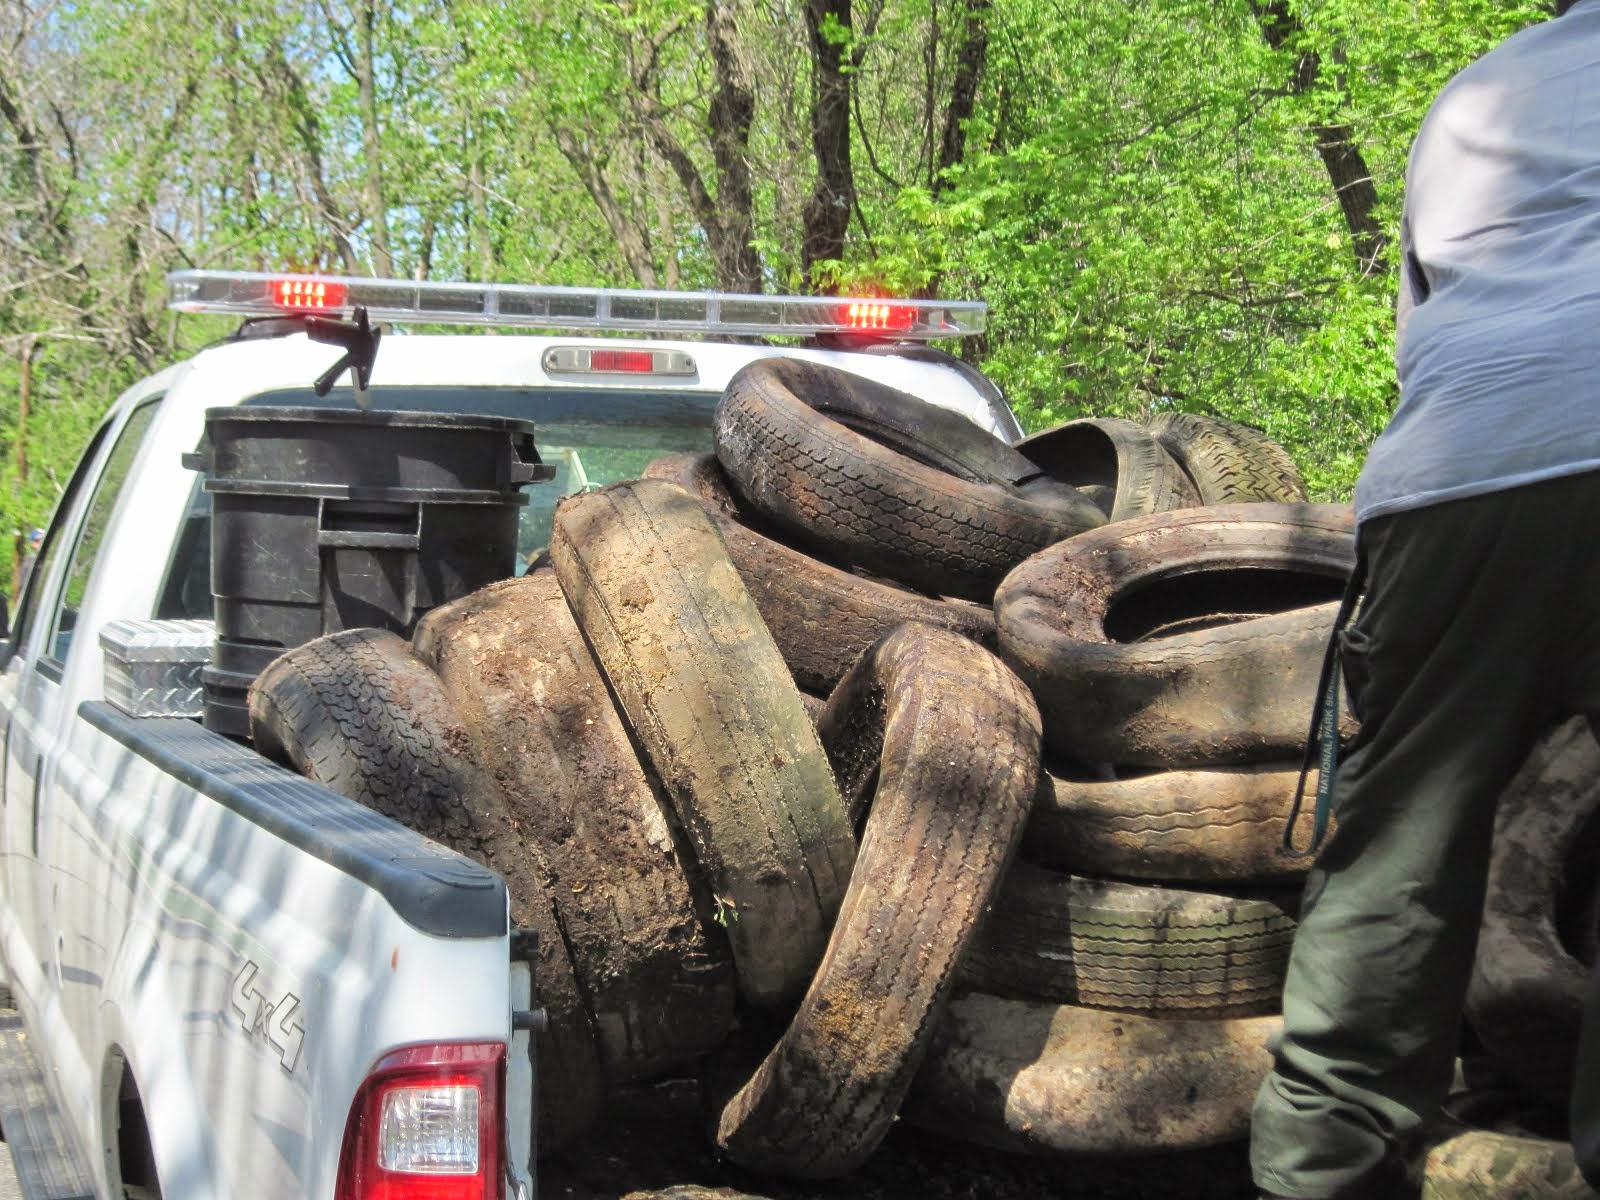 We have removed over 2,000 tires from the park since 2011.